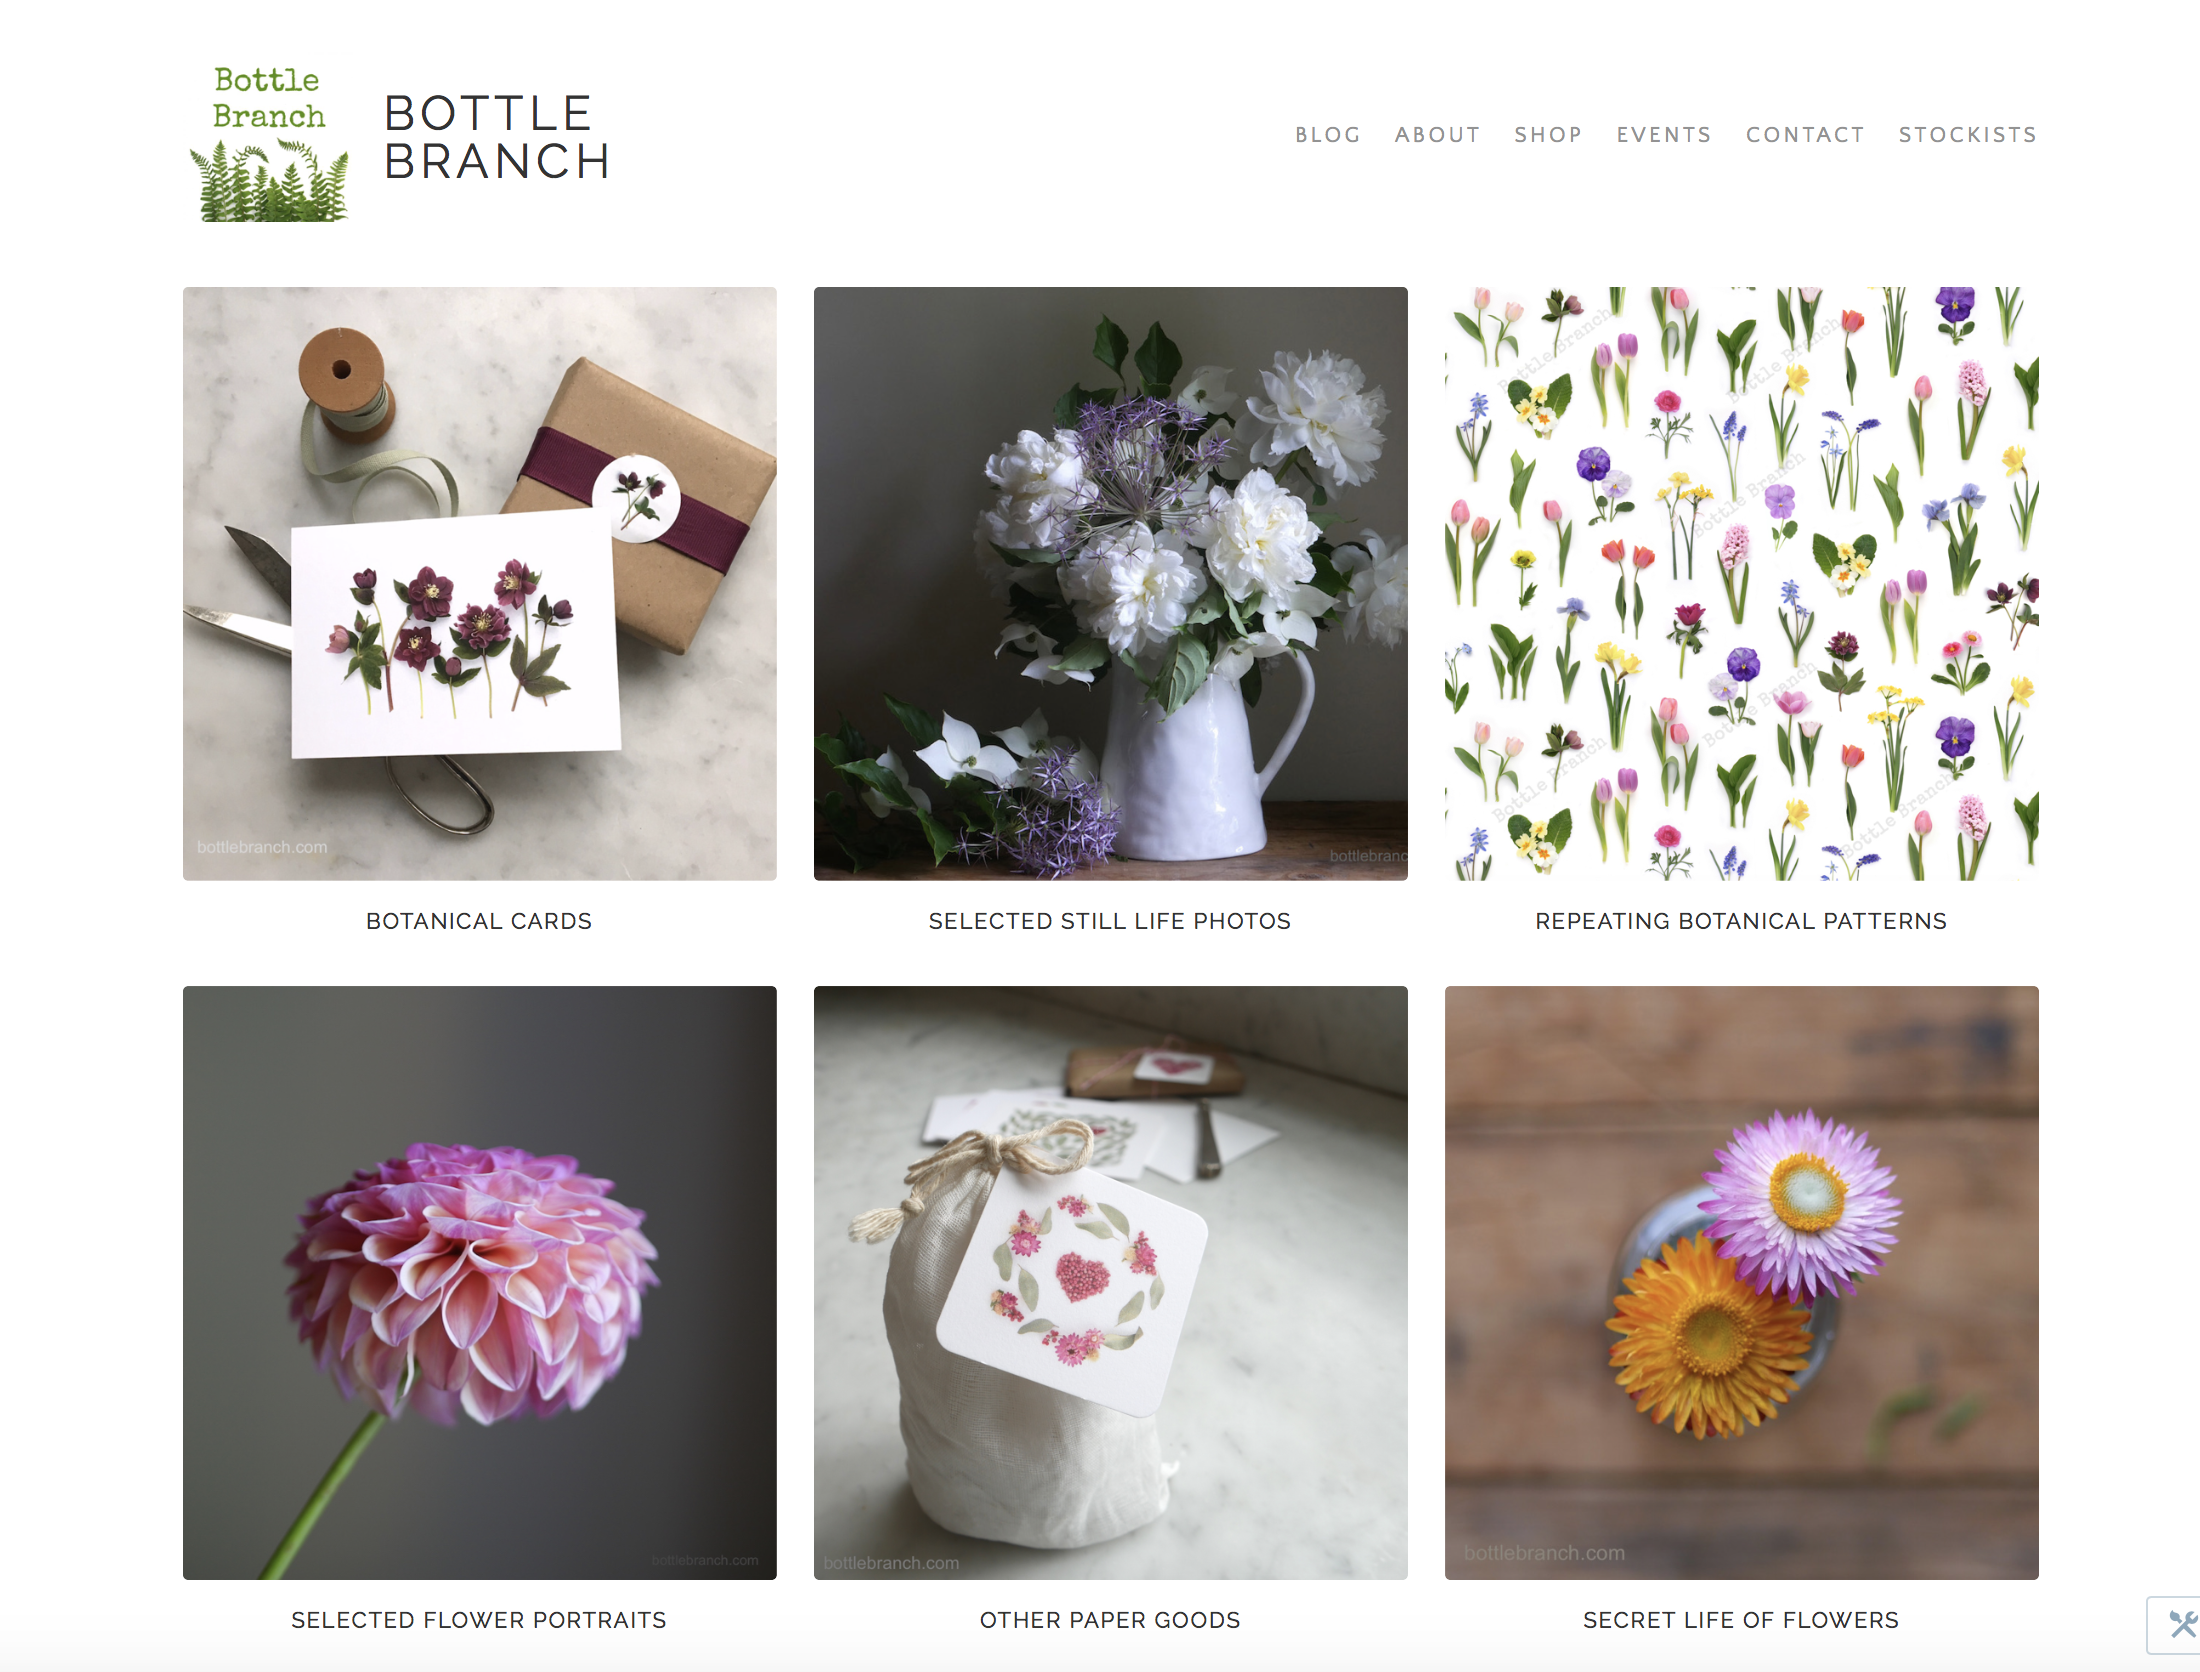 Thumbnail of Bottle Branch home page